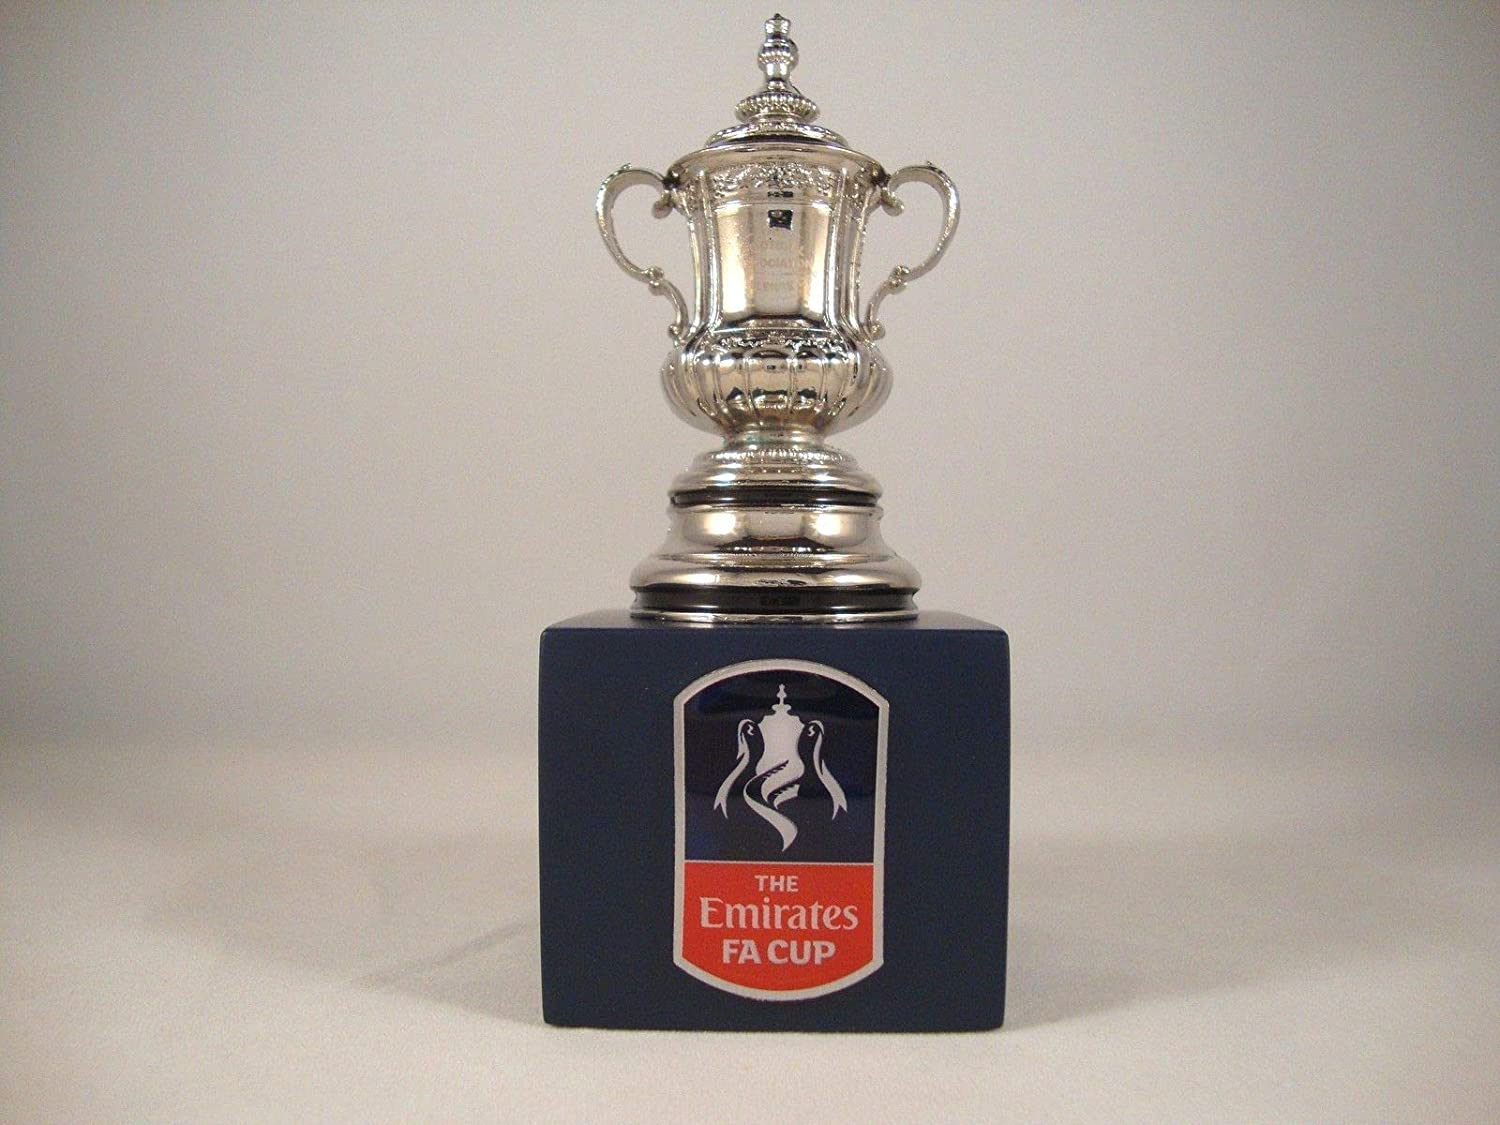 The FA Cup - Trophy replica on wooden pedestal (45 mm)